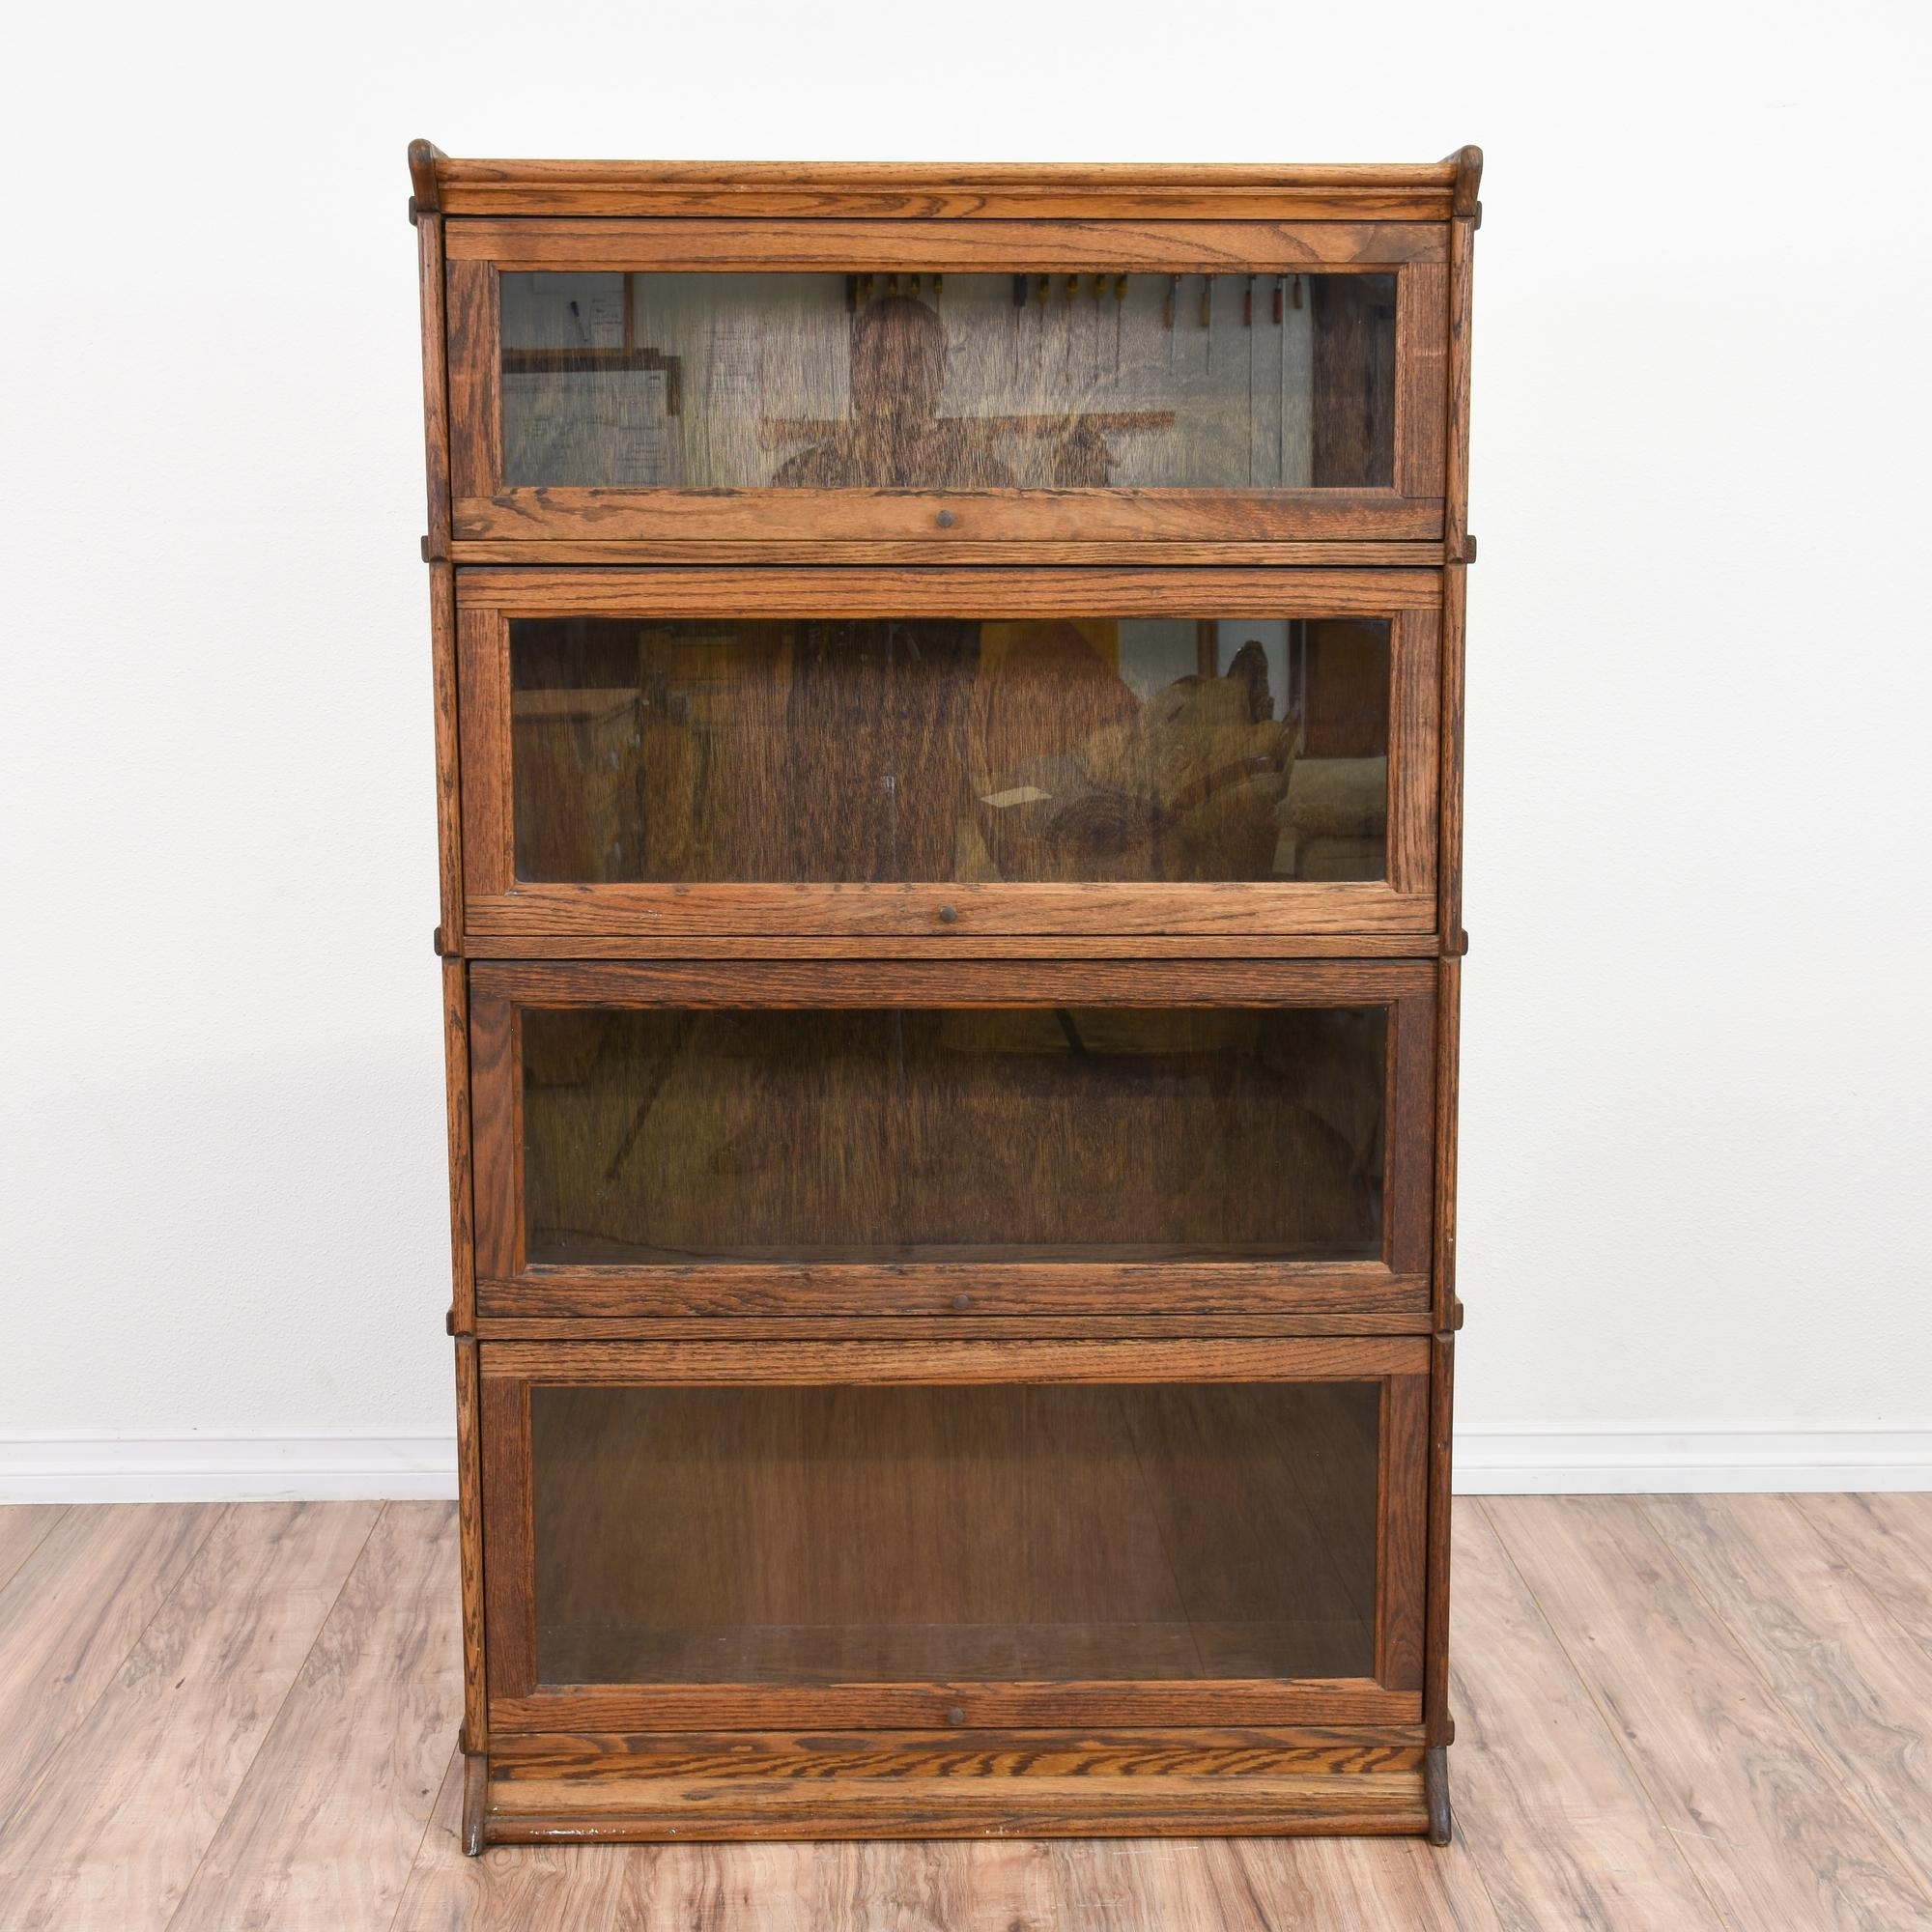 Most Current This Rustic Lawyers Bookcase Is Featured In A Solid Wood With A Within Lawyers Bookcases (View 10 of 15)